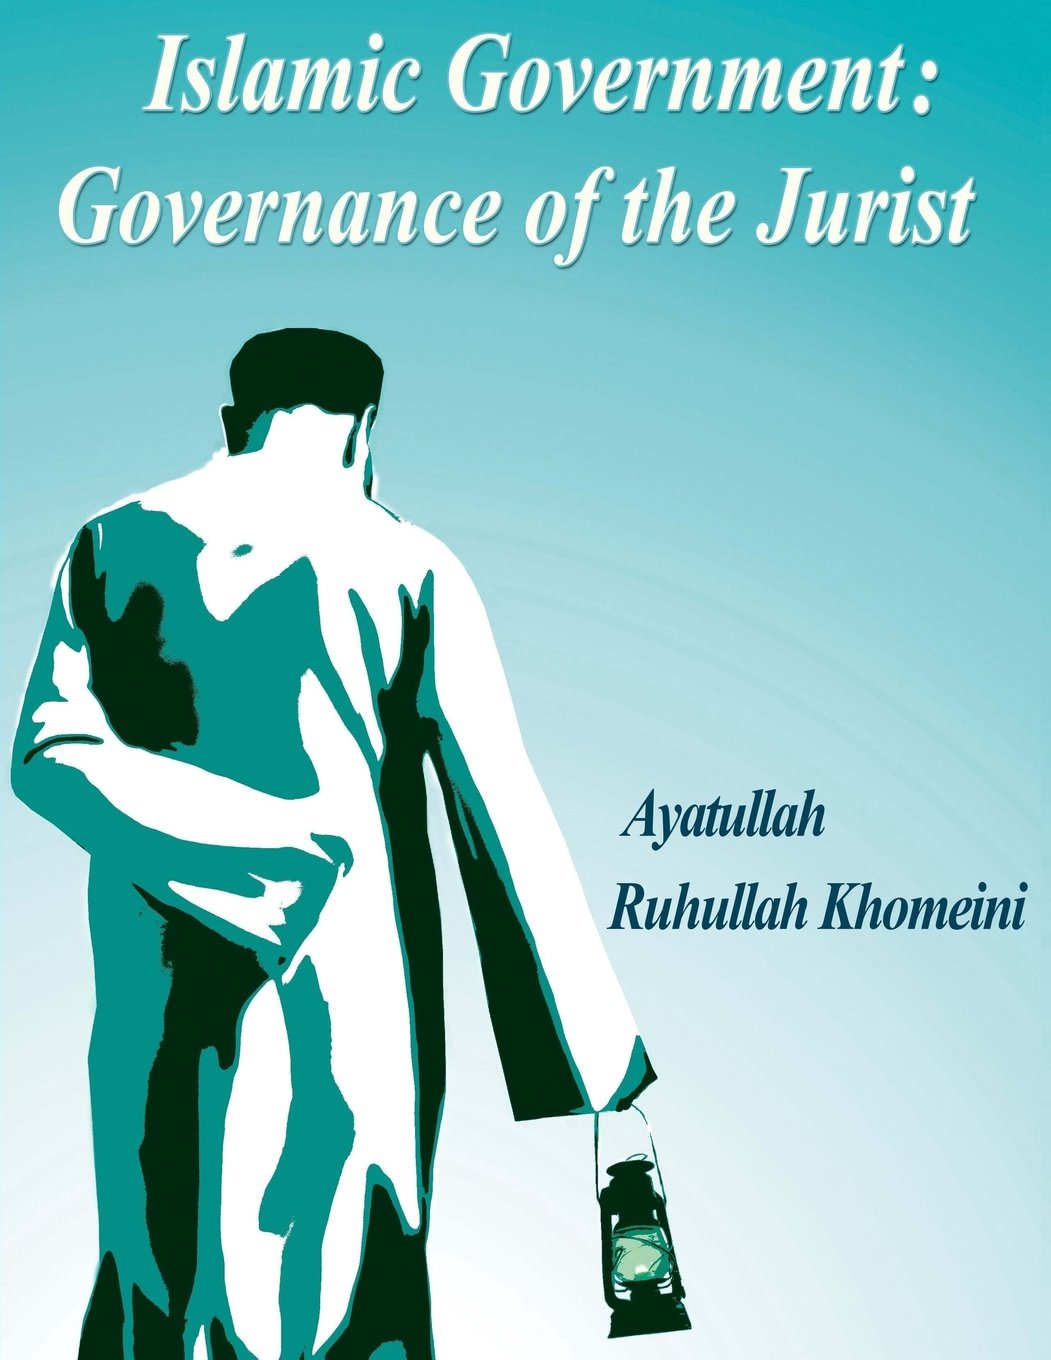 Islamic government governance of the jurist ayatullah ruhullah islamic government governance of the jurist ayatullah ruhullah khomeini 9781494871925 amazon books sciox Choice Image